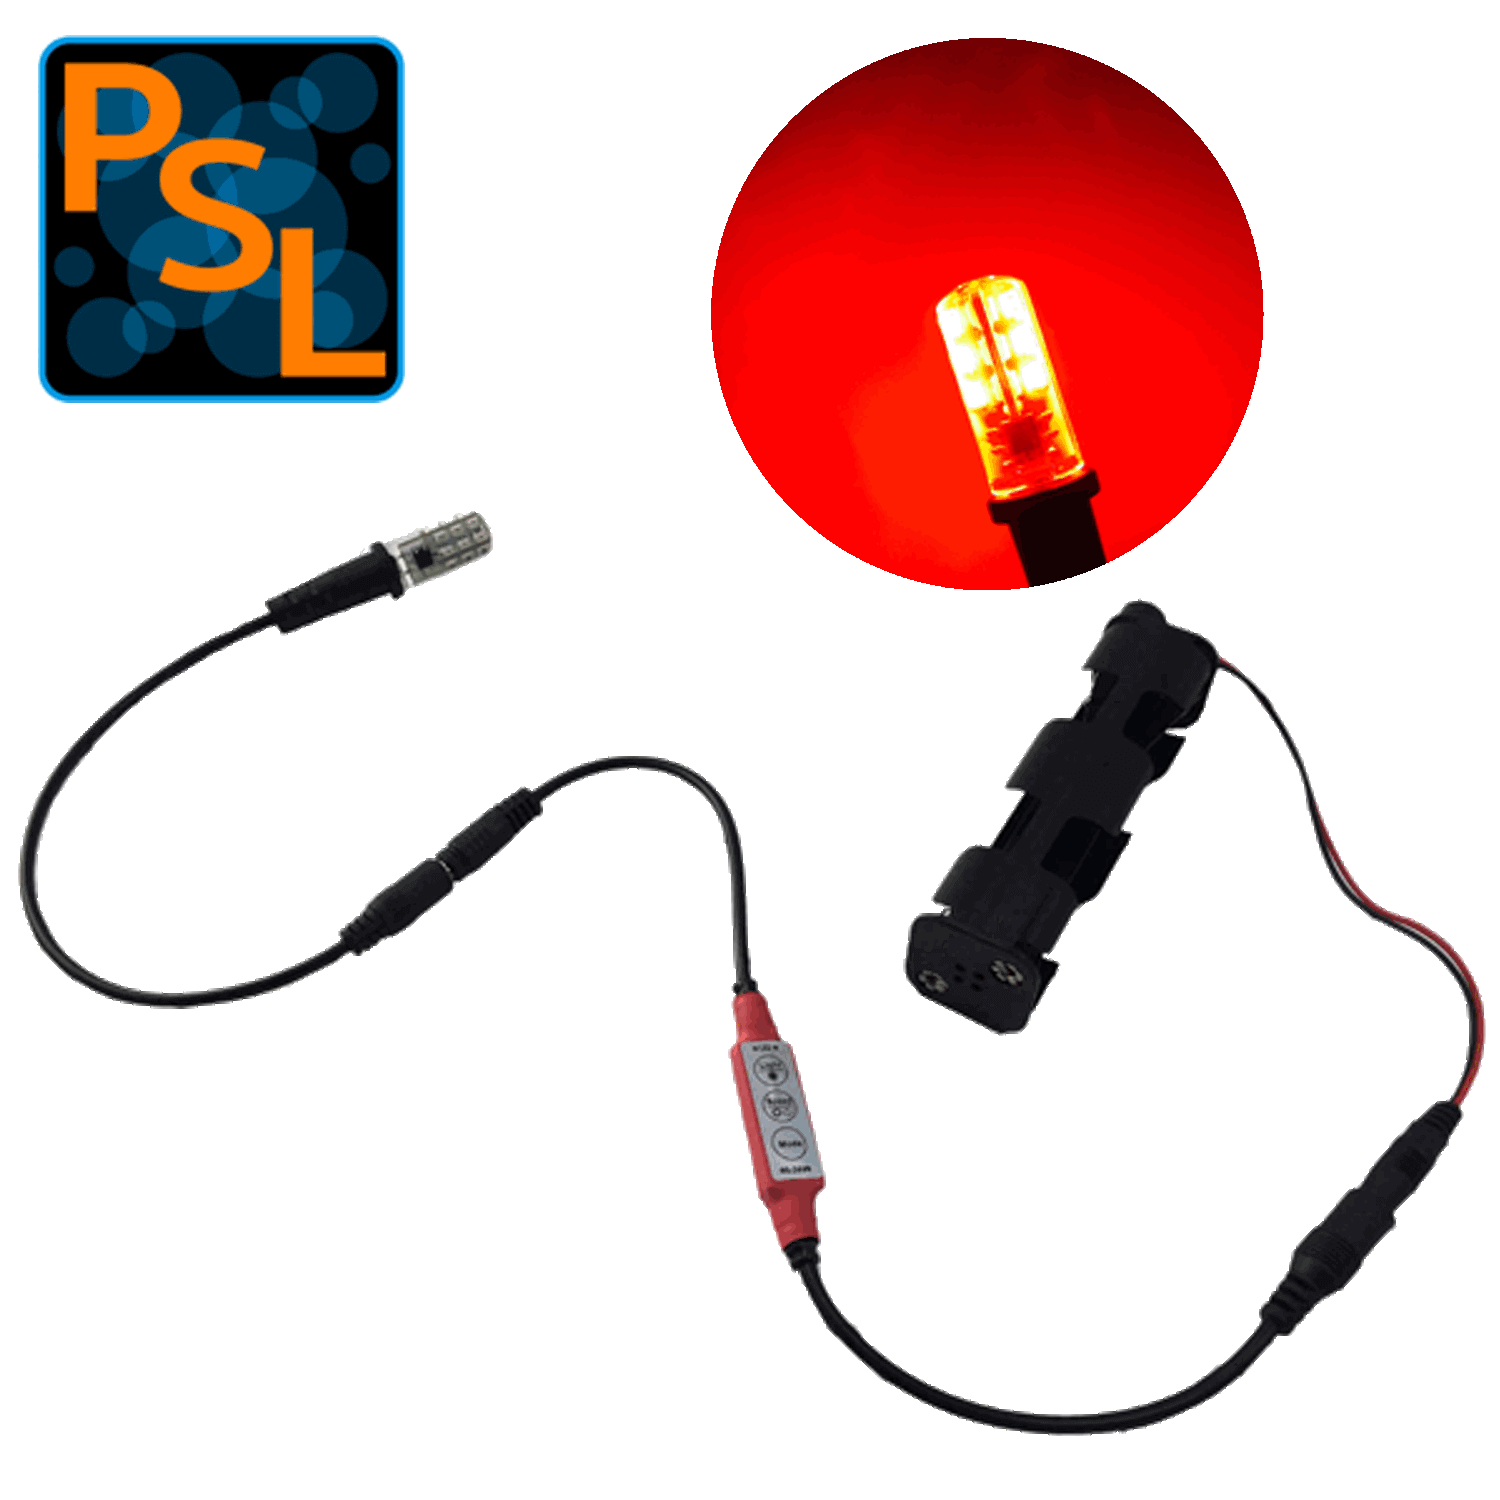 Eel Enhanced Effects Light Red Led Kit Flame Flicker Control And Battery Pack